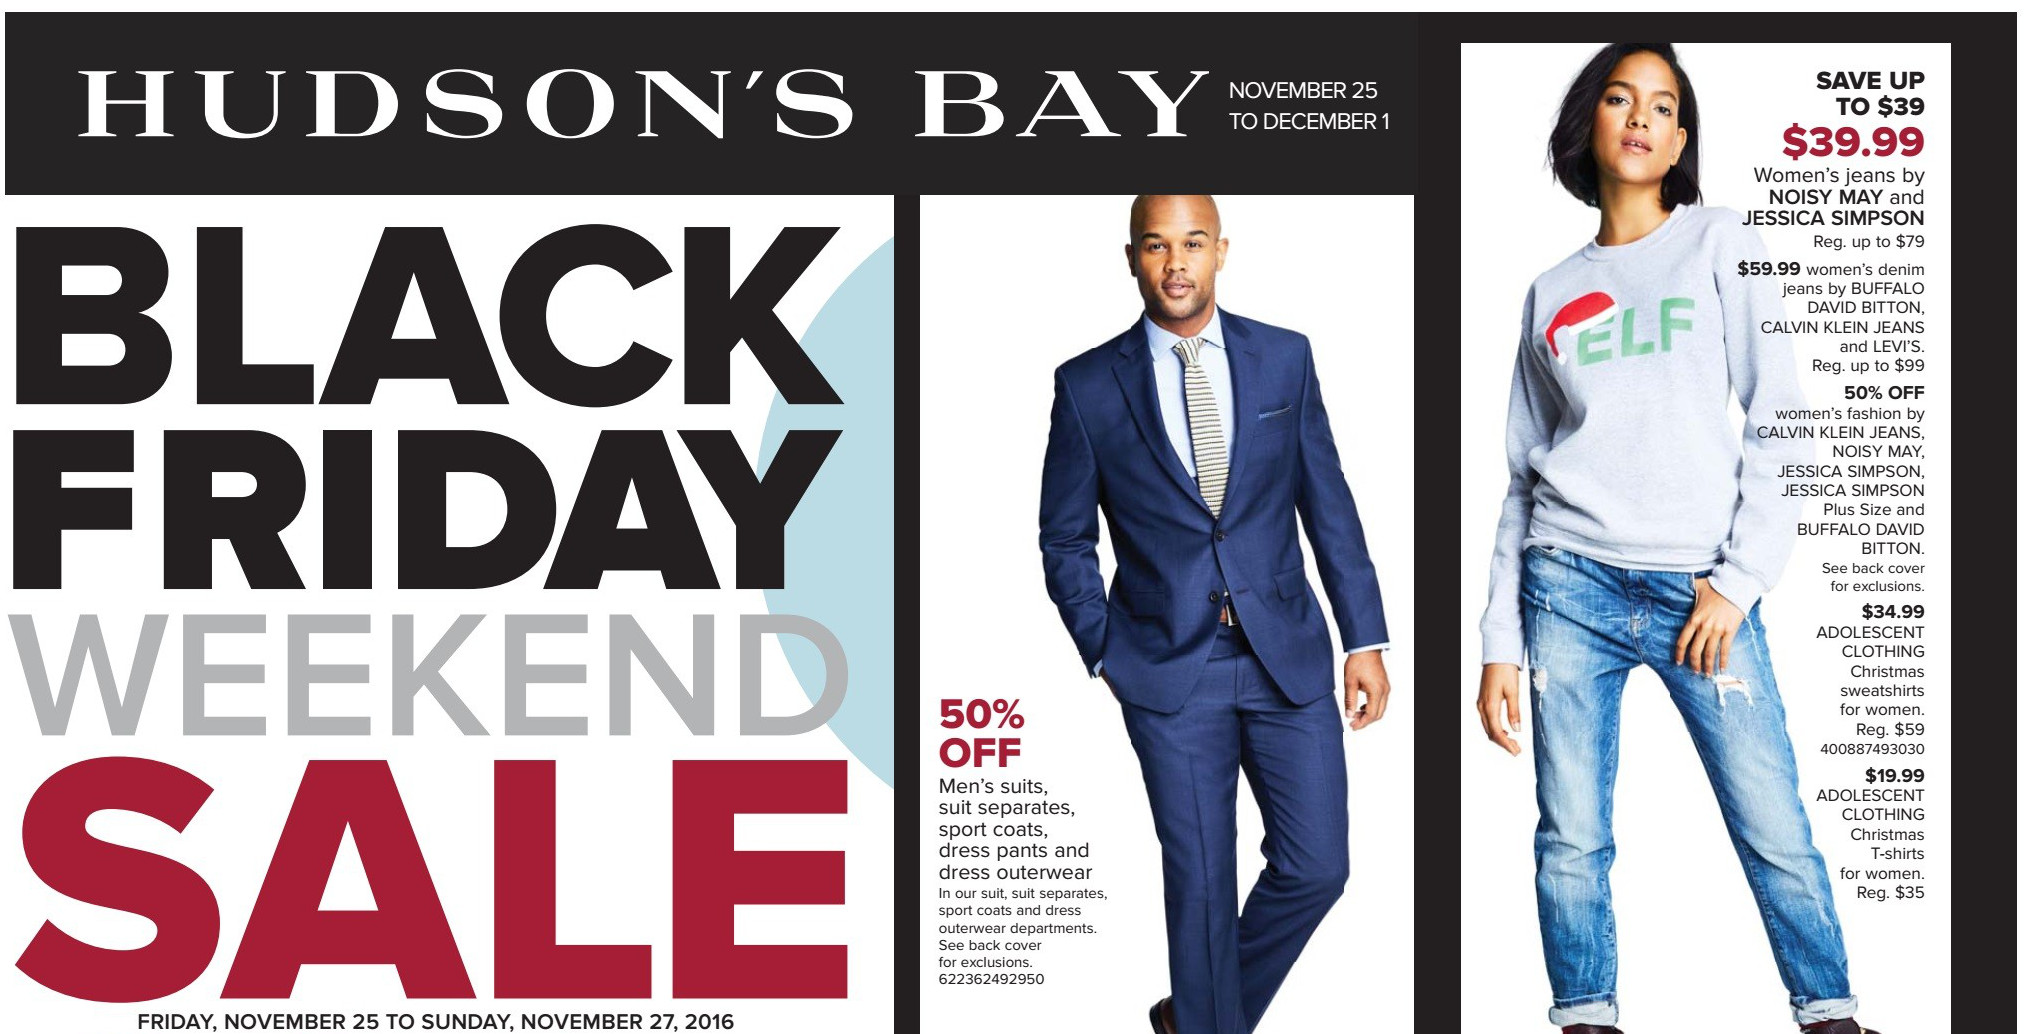 hudsons-bay-black-friday-2016